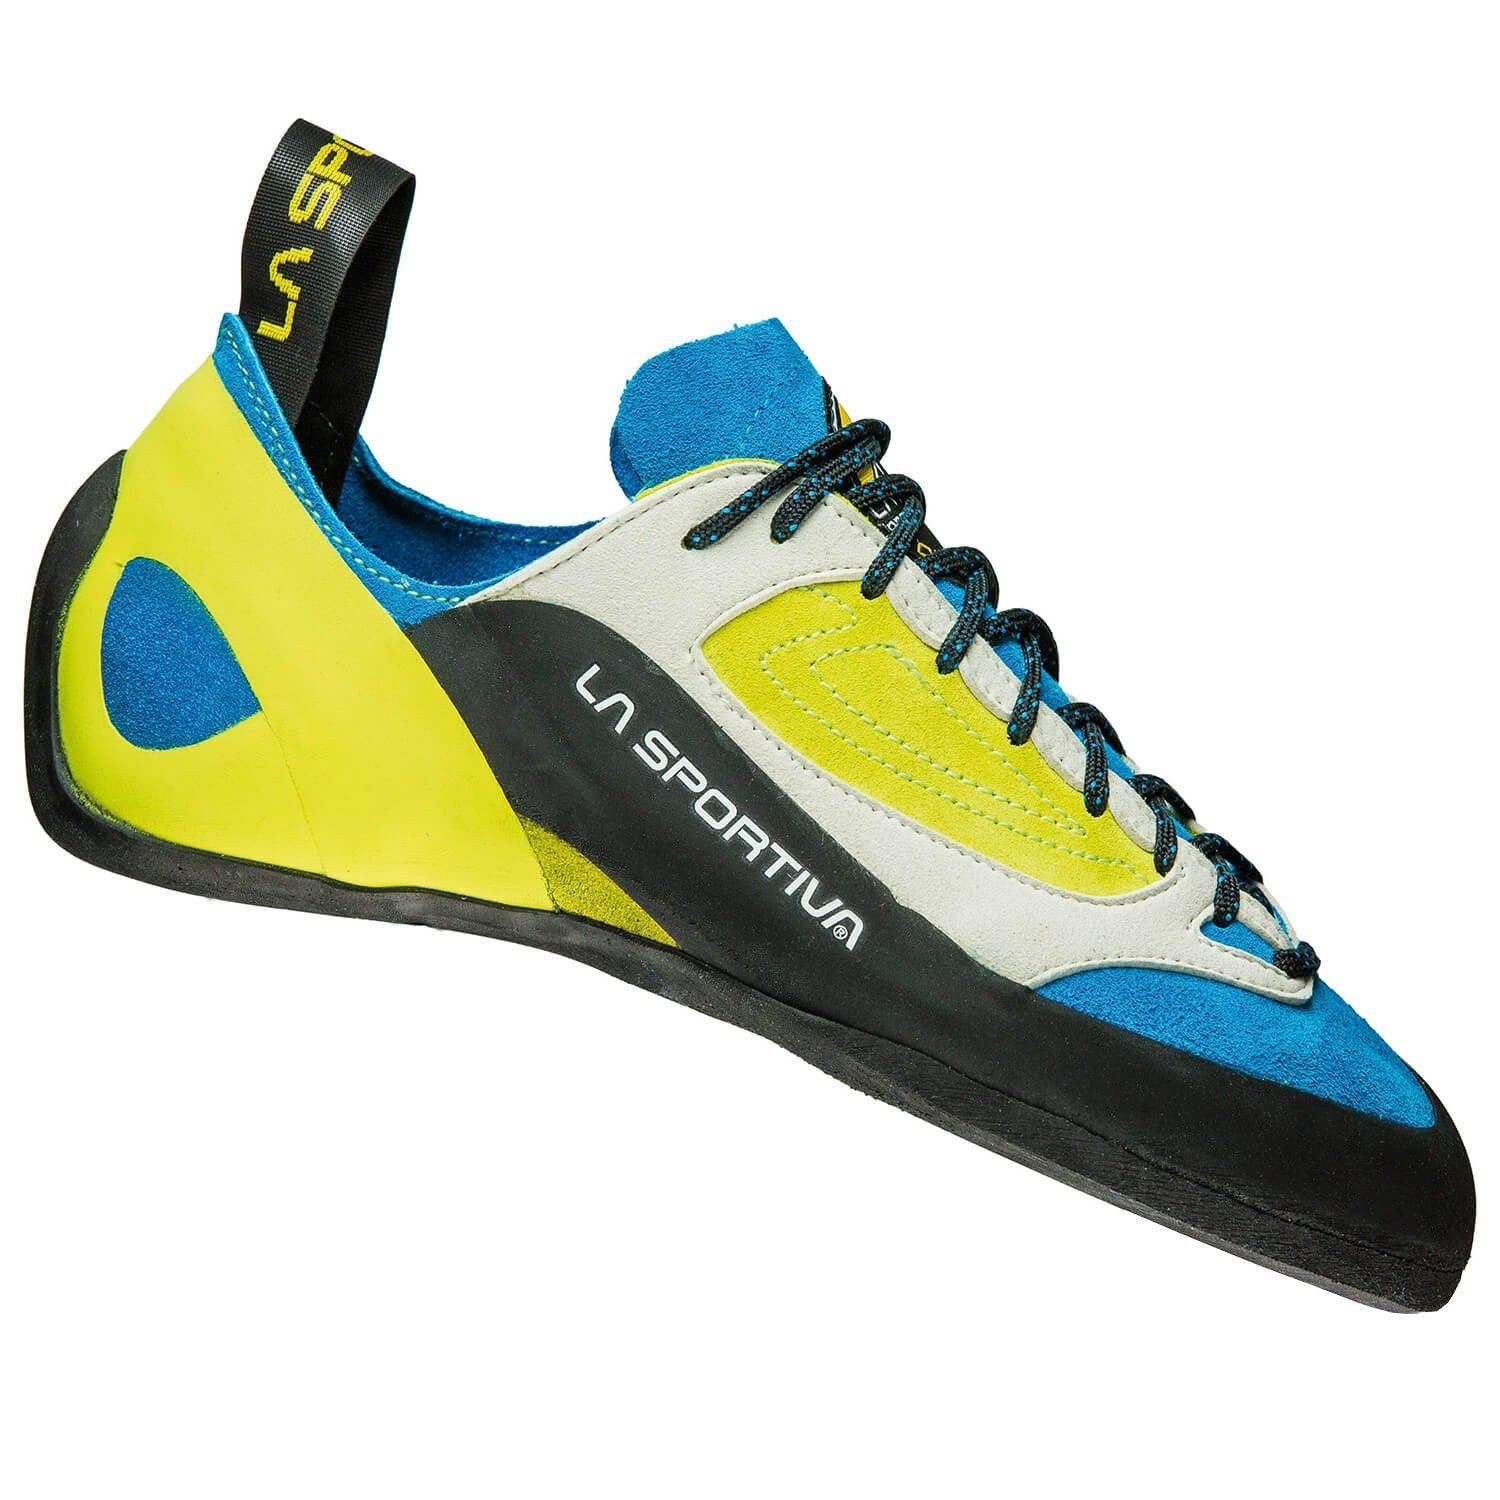 La Sportiva Finale climbing shoe, in black, blue and yellow colours